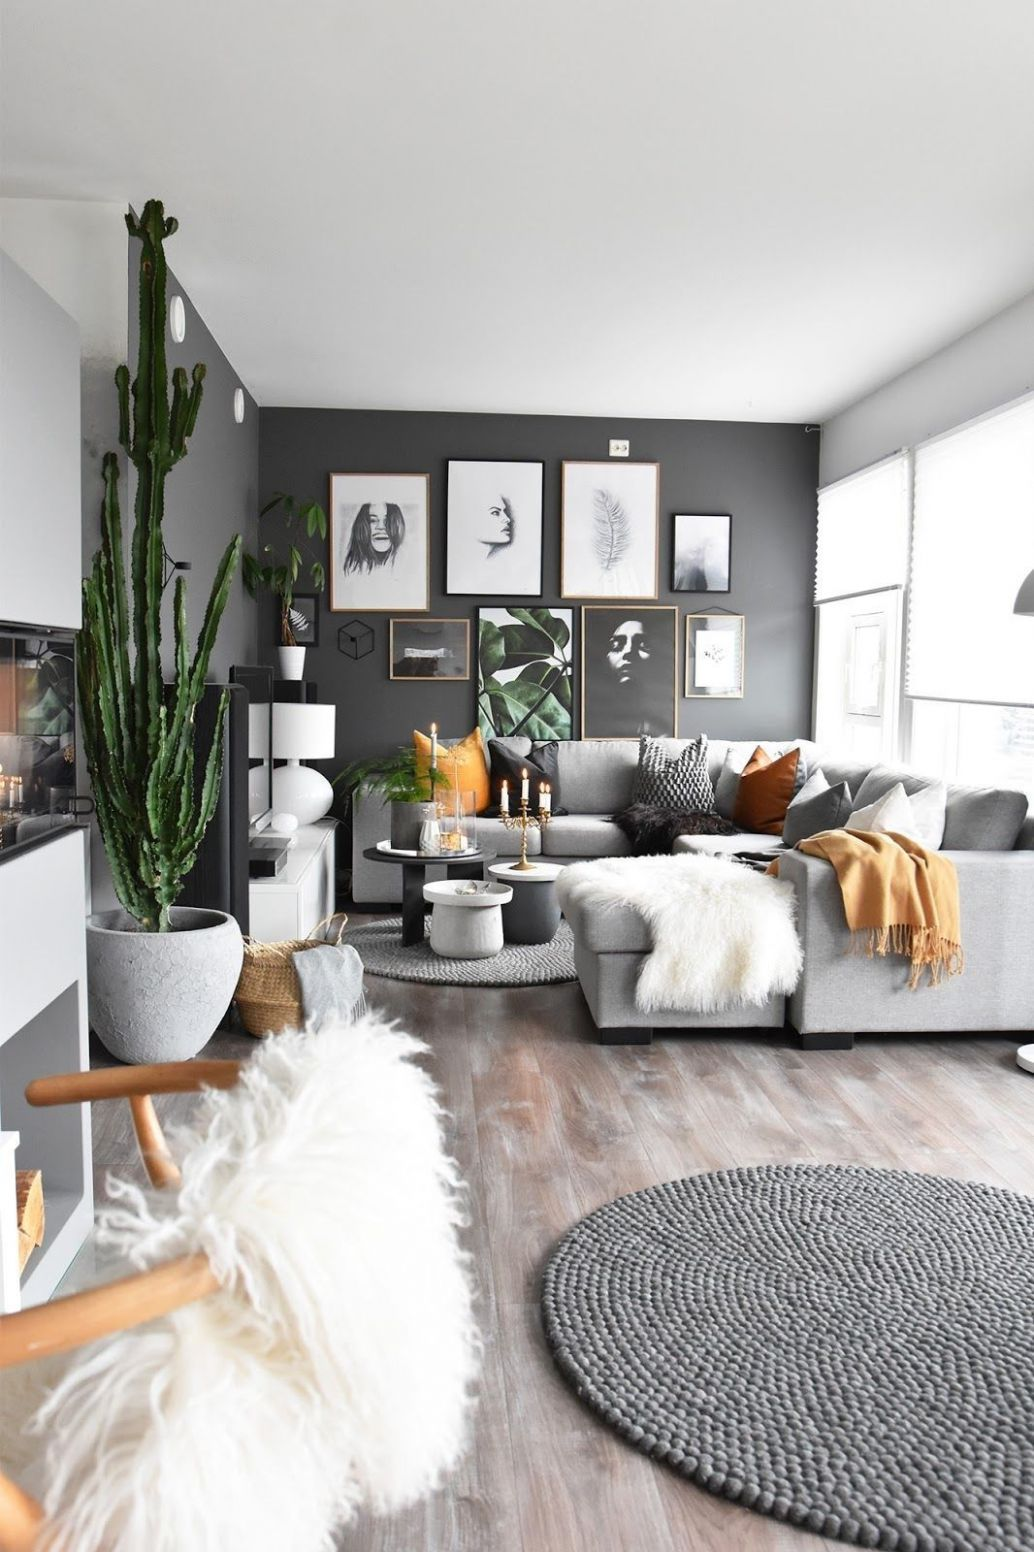 Apartment Decor Interior Design 9 Trending Trends | Apartment ..